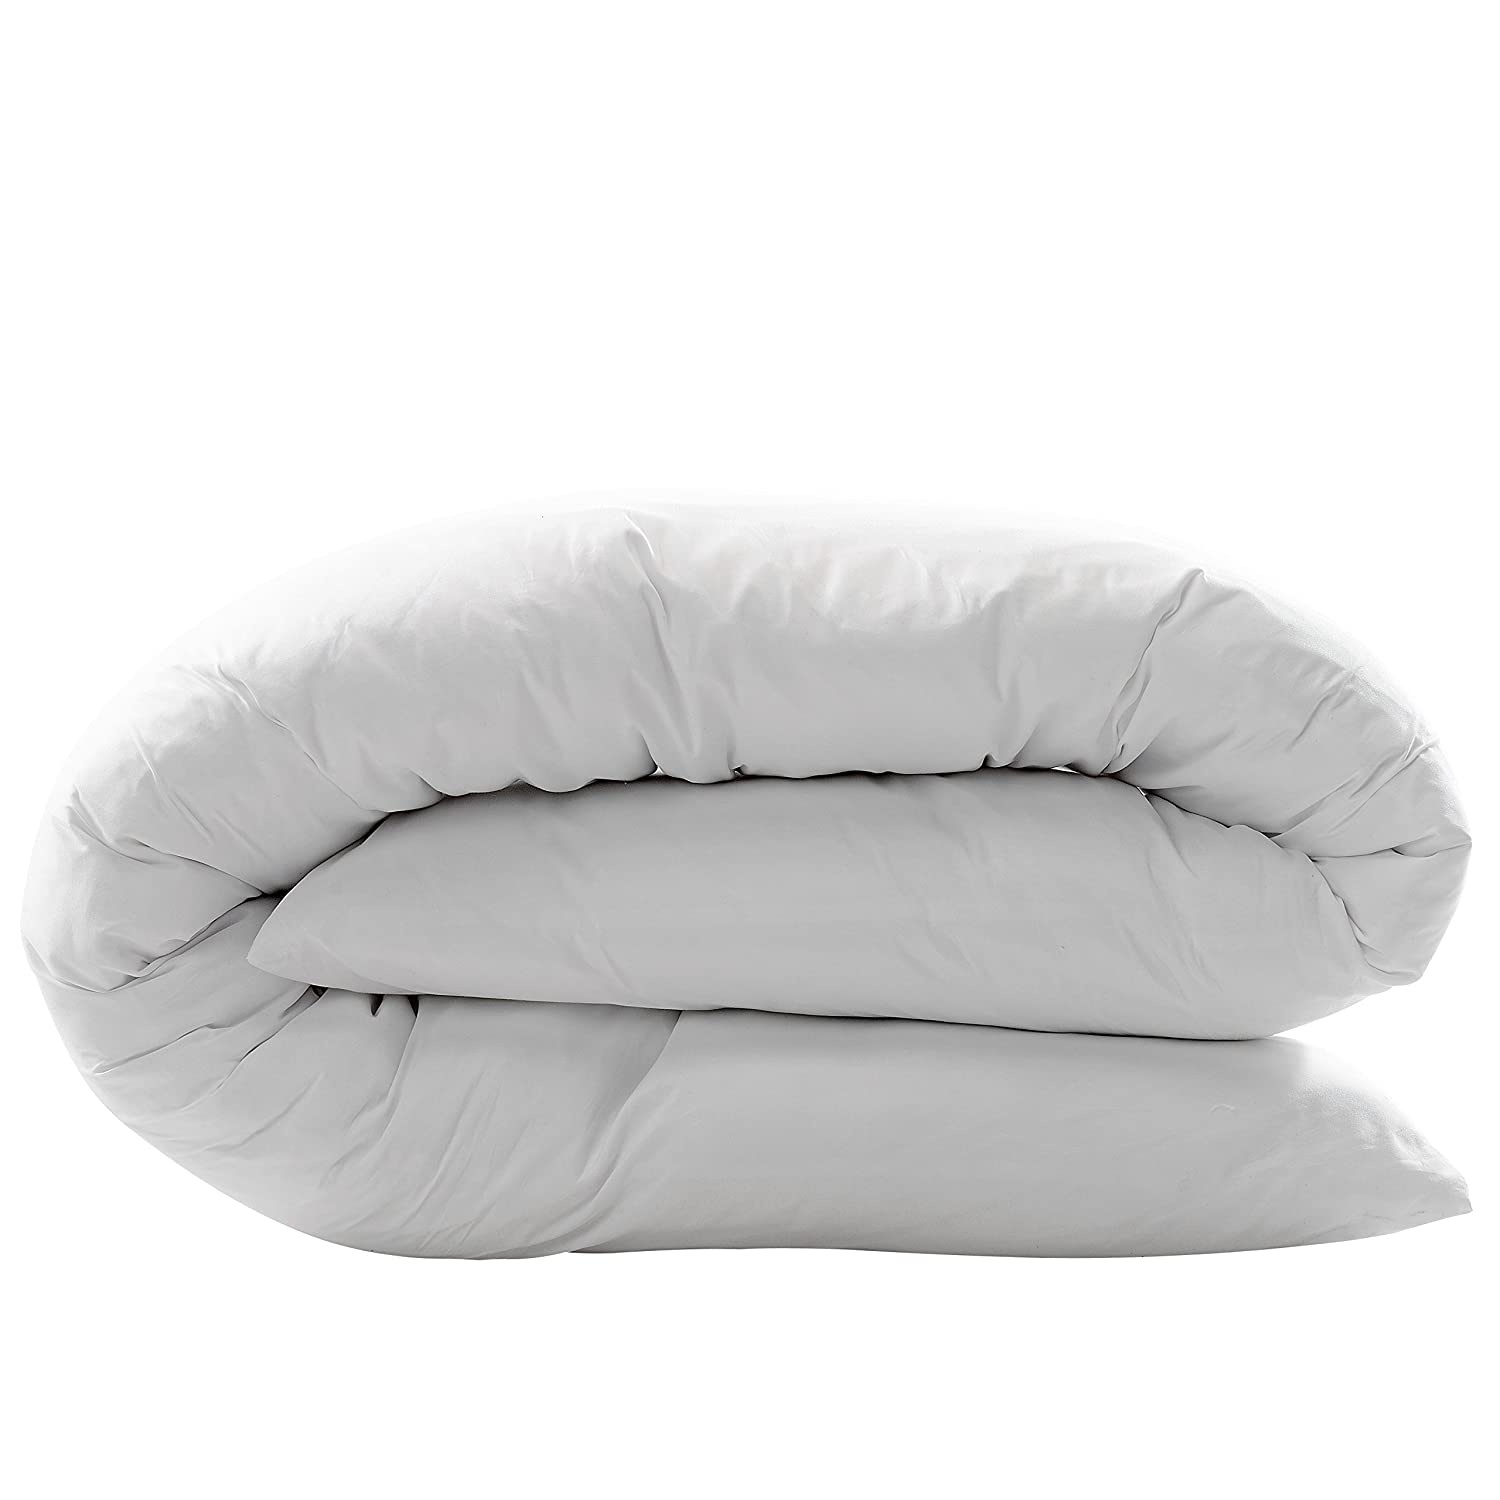 White COMIN16JU035632 Cheer Collection Hypoallergenic Down Alternative Premium 19 x 90 Total Body Pillow with Zippered Cover